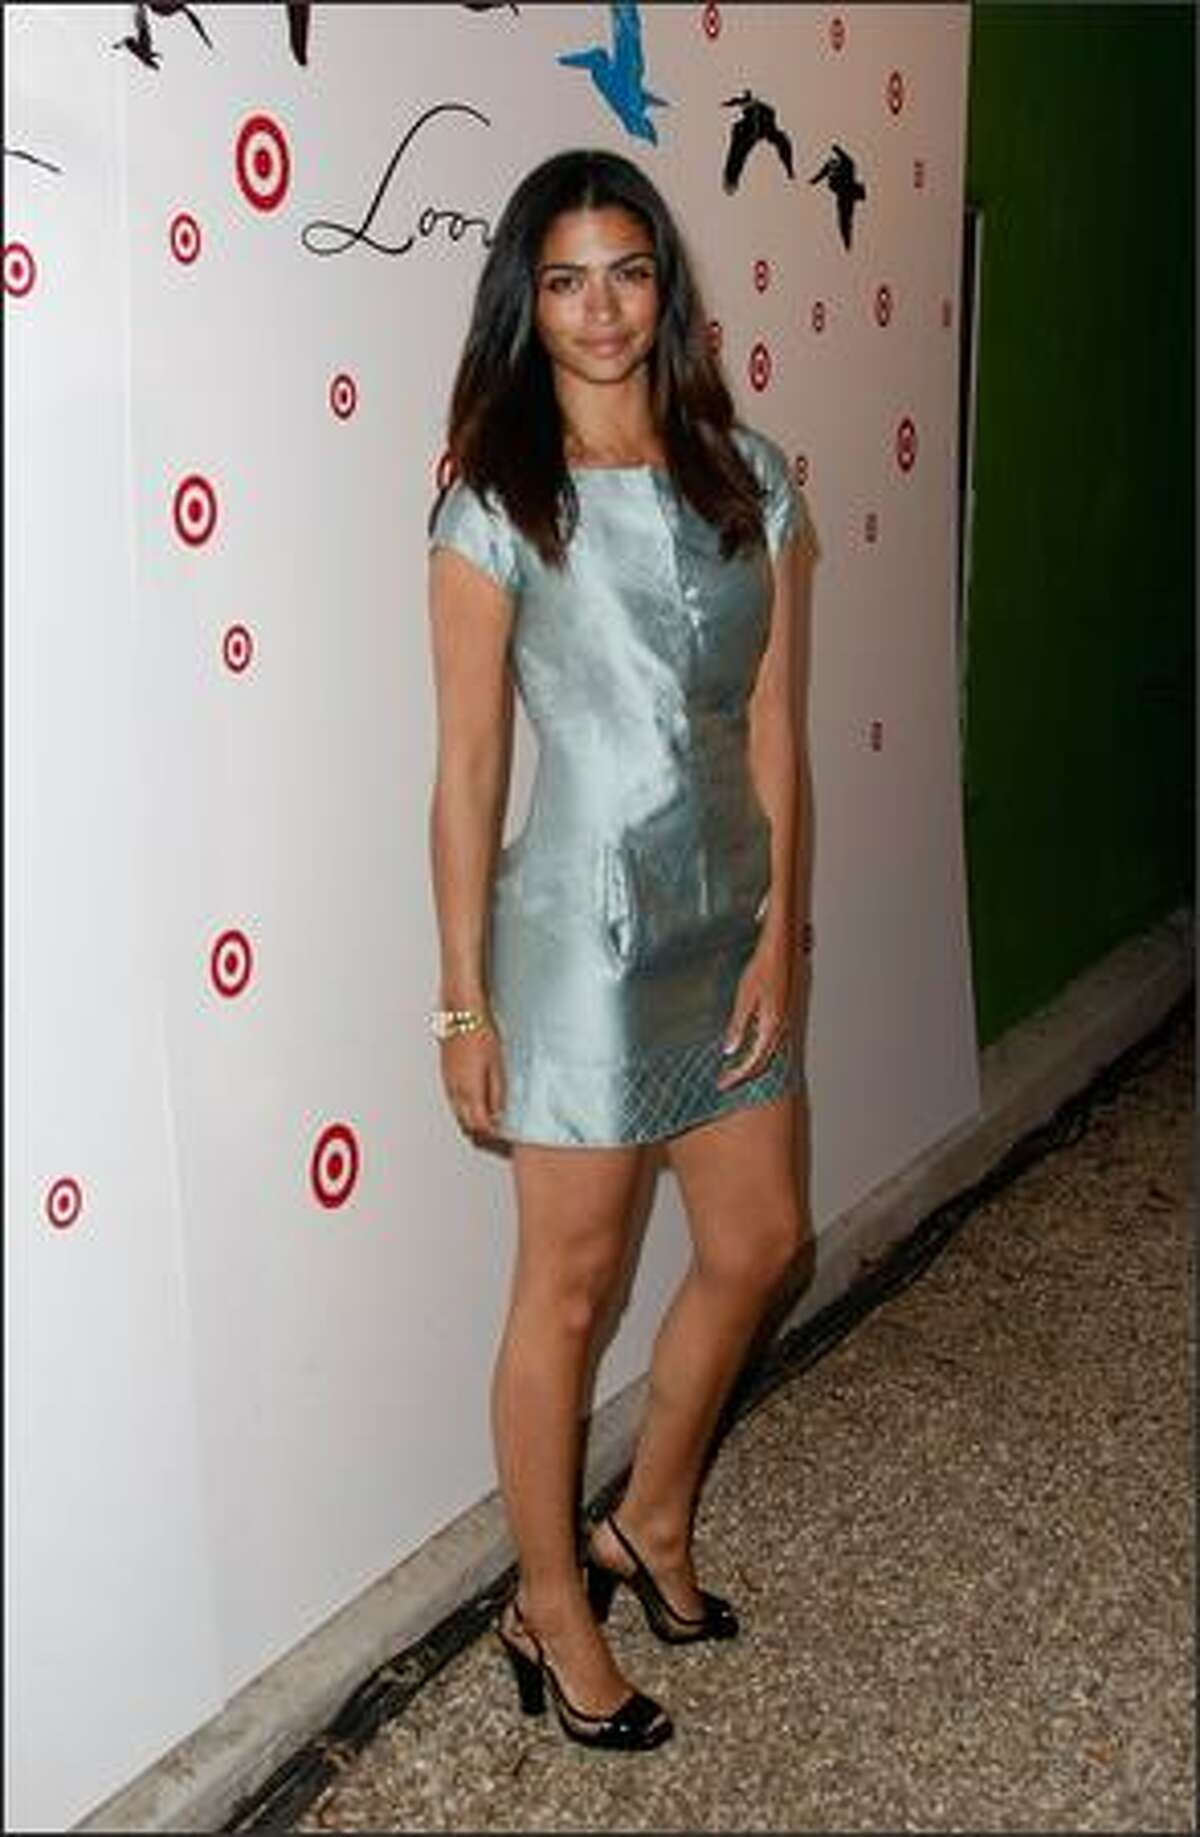 Model Camilla Alves arrives for the launch of Loomstate For Target Collection at the Big Red Sun in Venice, California.